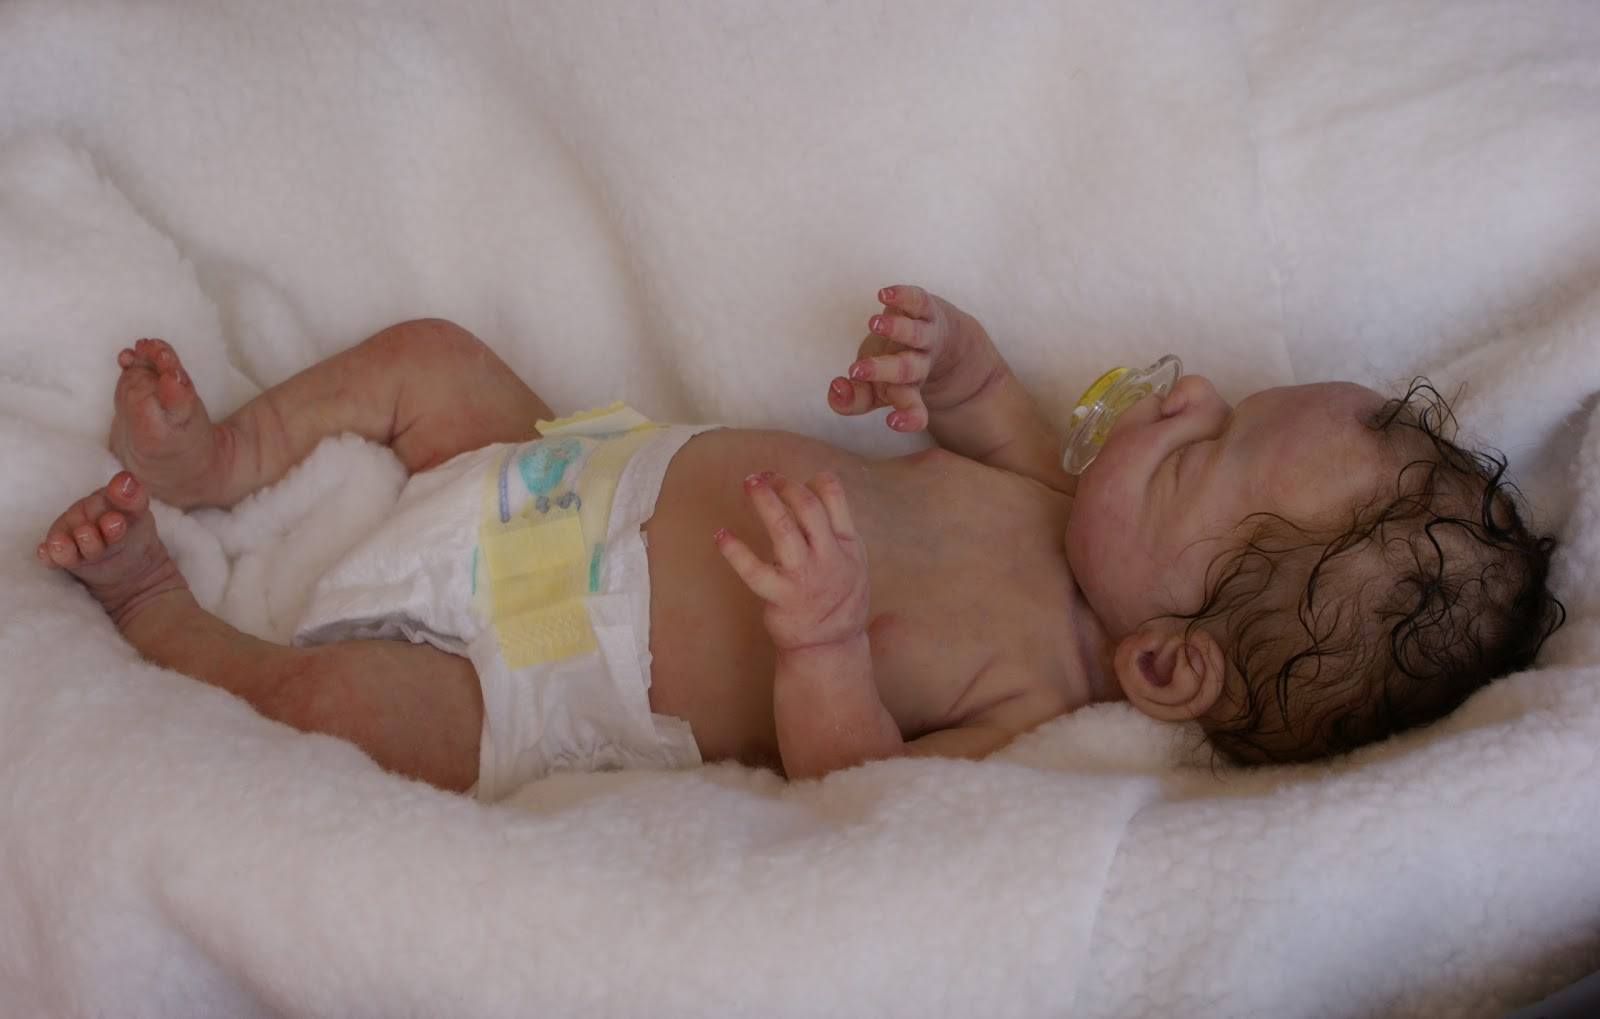 Thistleberry Babies Aliona Full Body Solid Silicone Baby